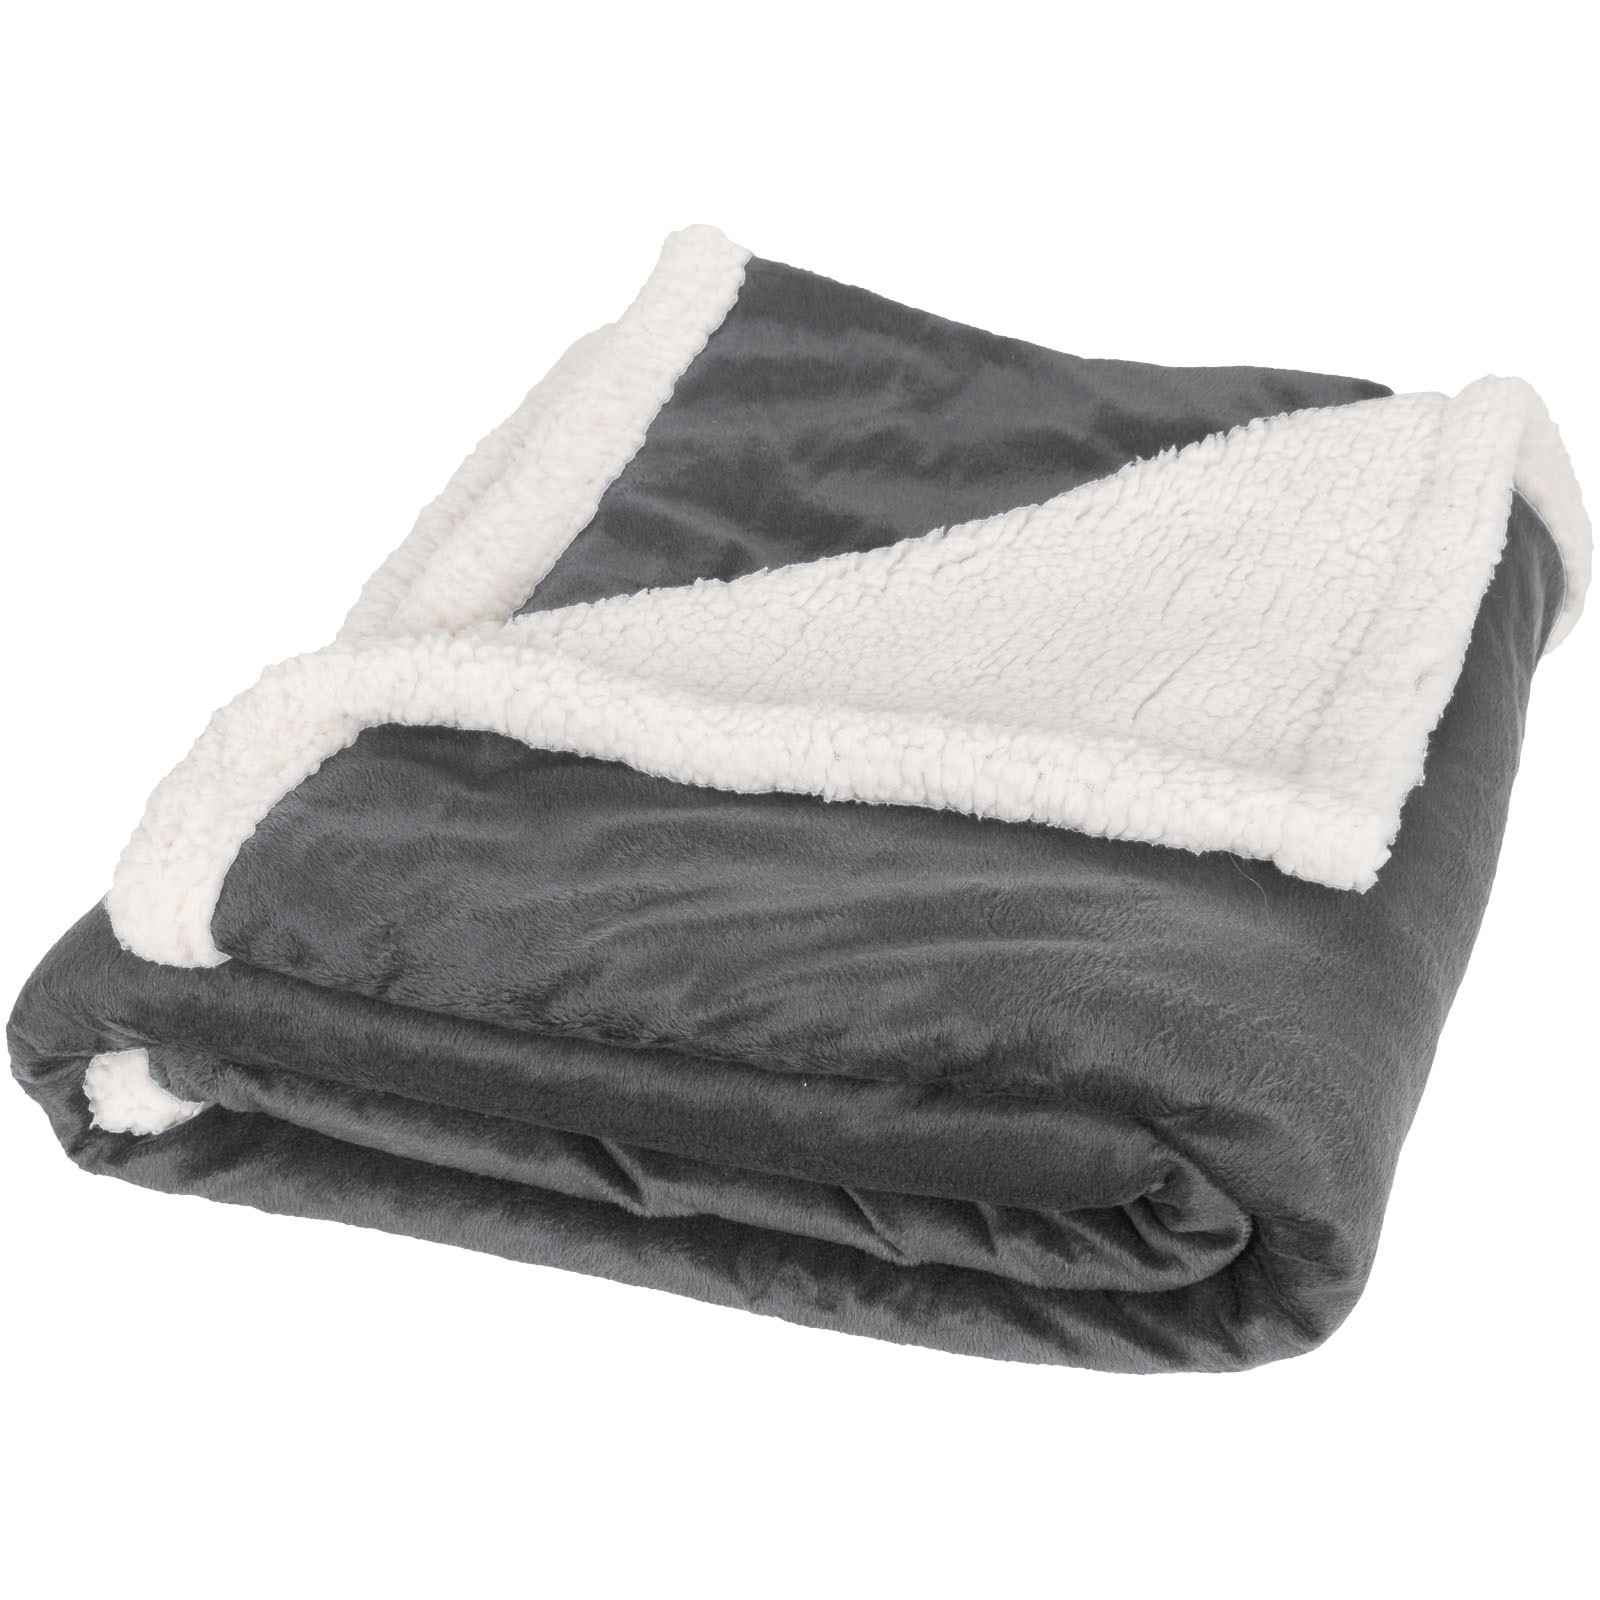 Lauren sherpa fleece plaid blanket - Grey